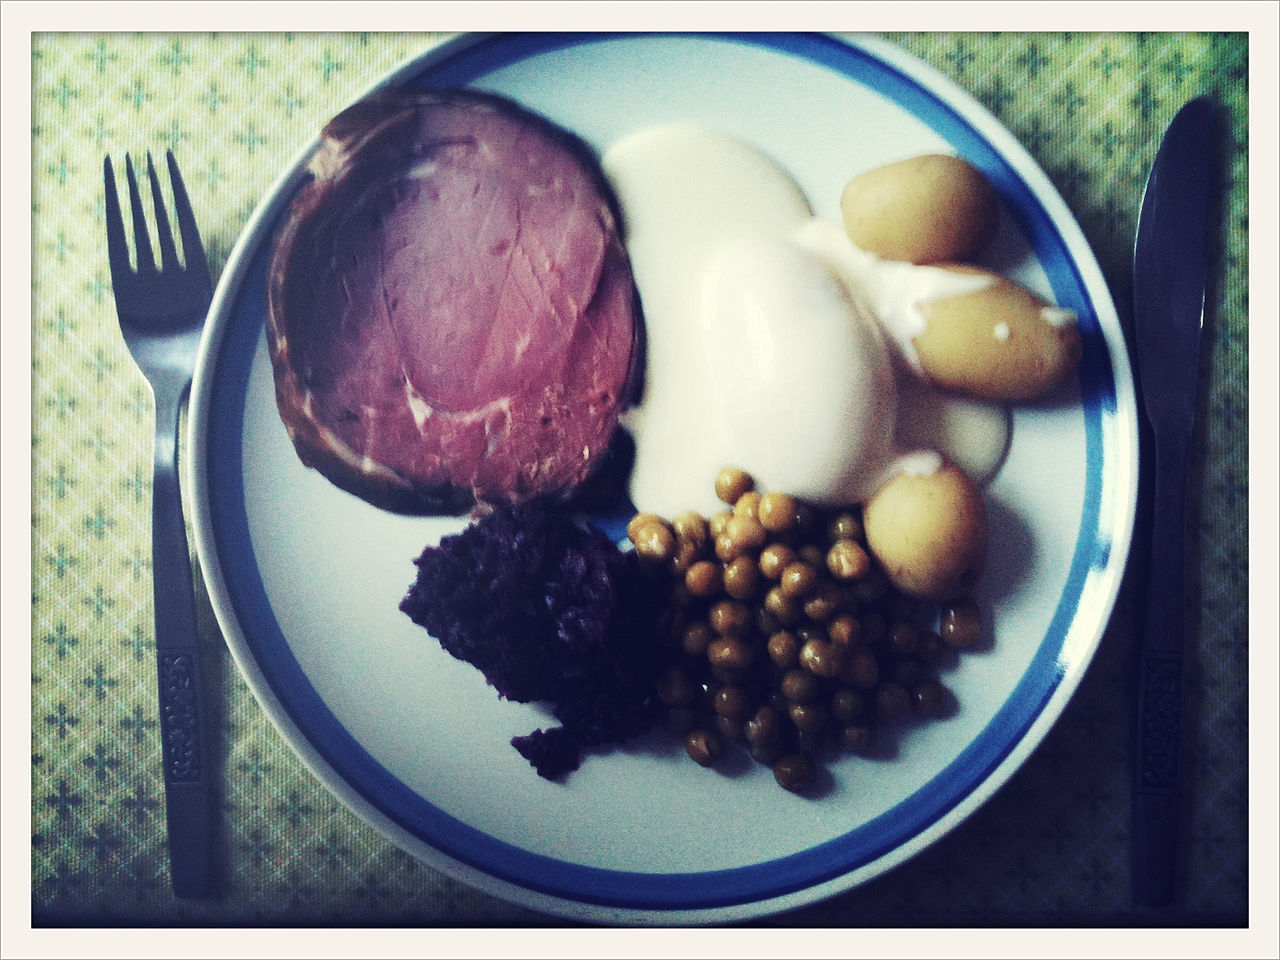 Icelandic christmas food - smoked lamb